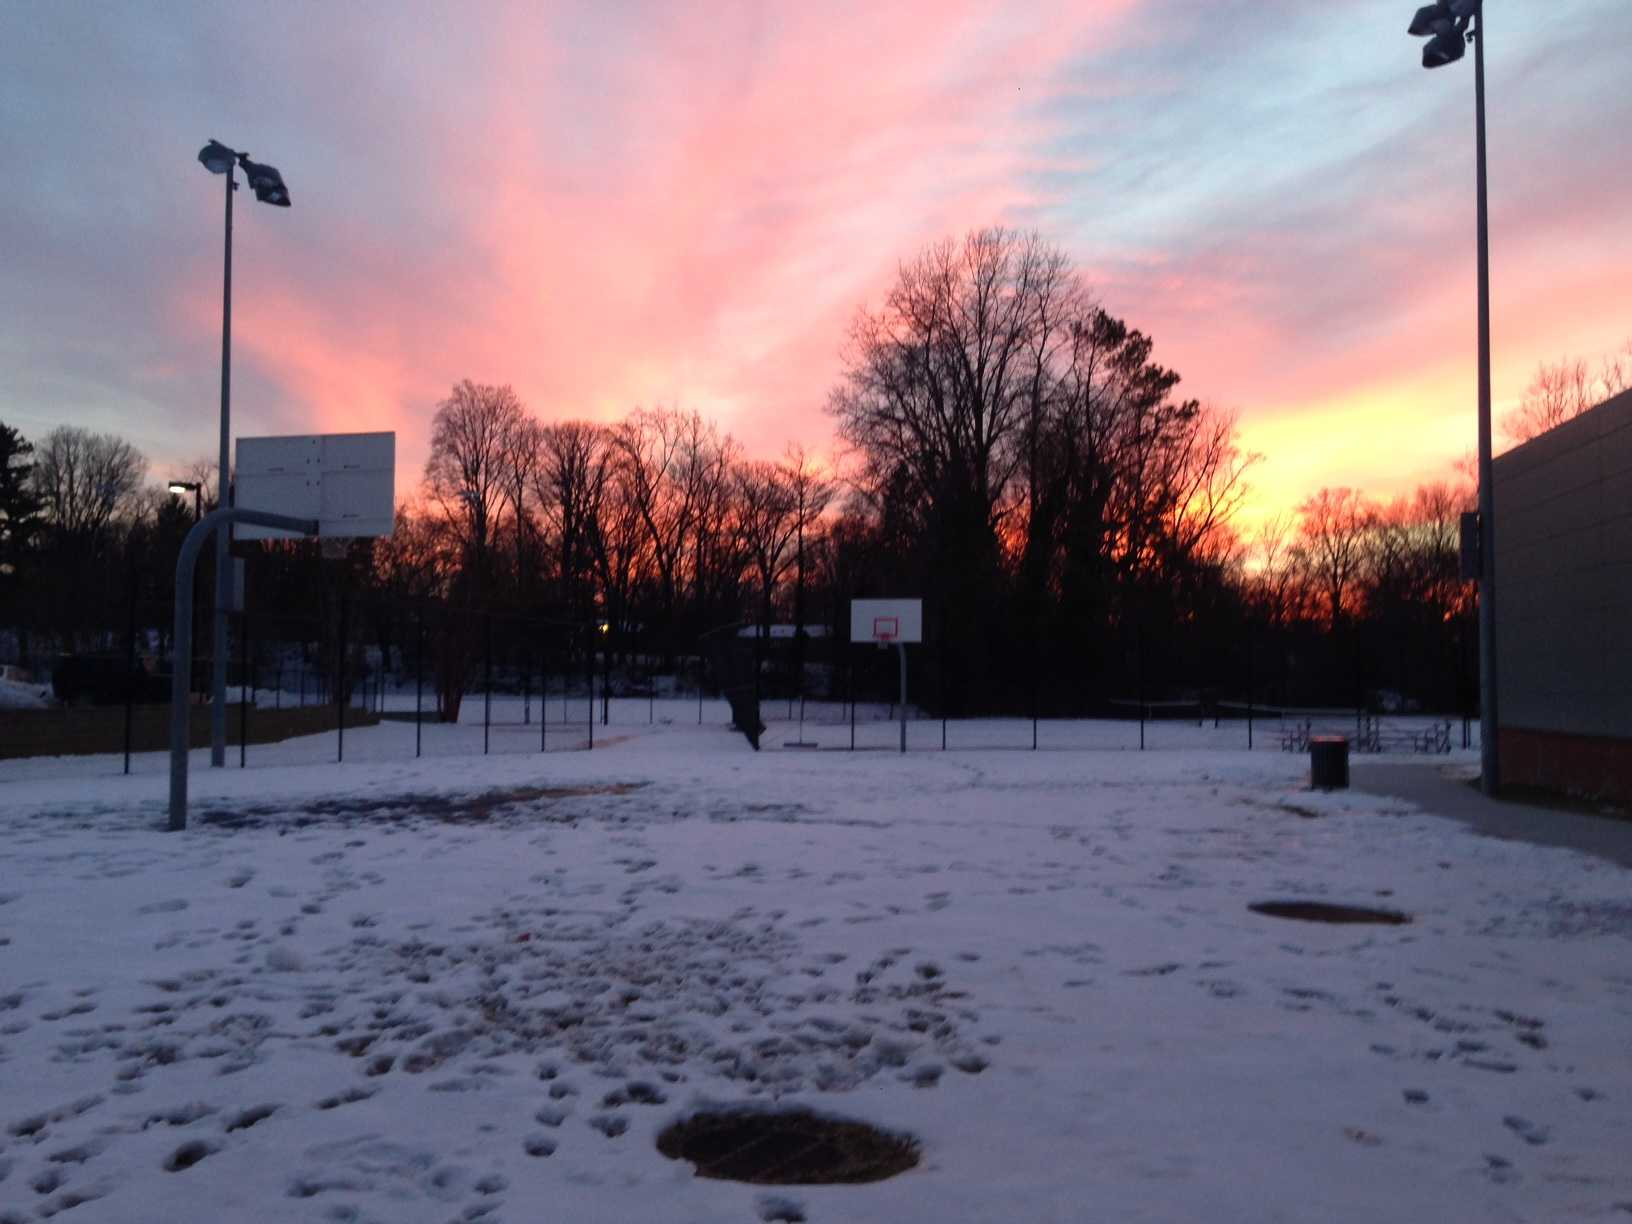 The tennis courts were covered in snow for the first weeks of the season